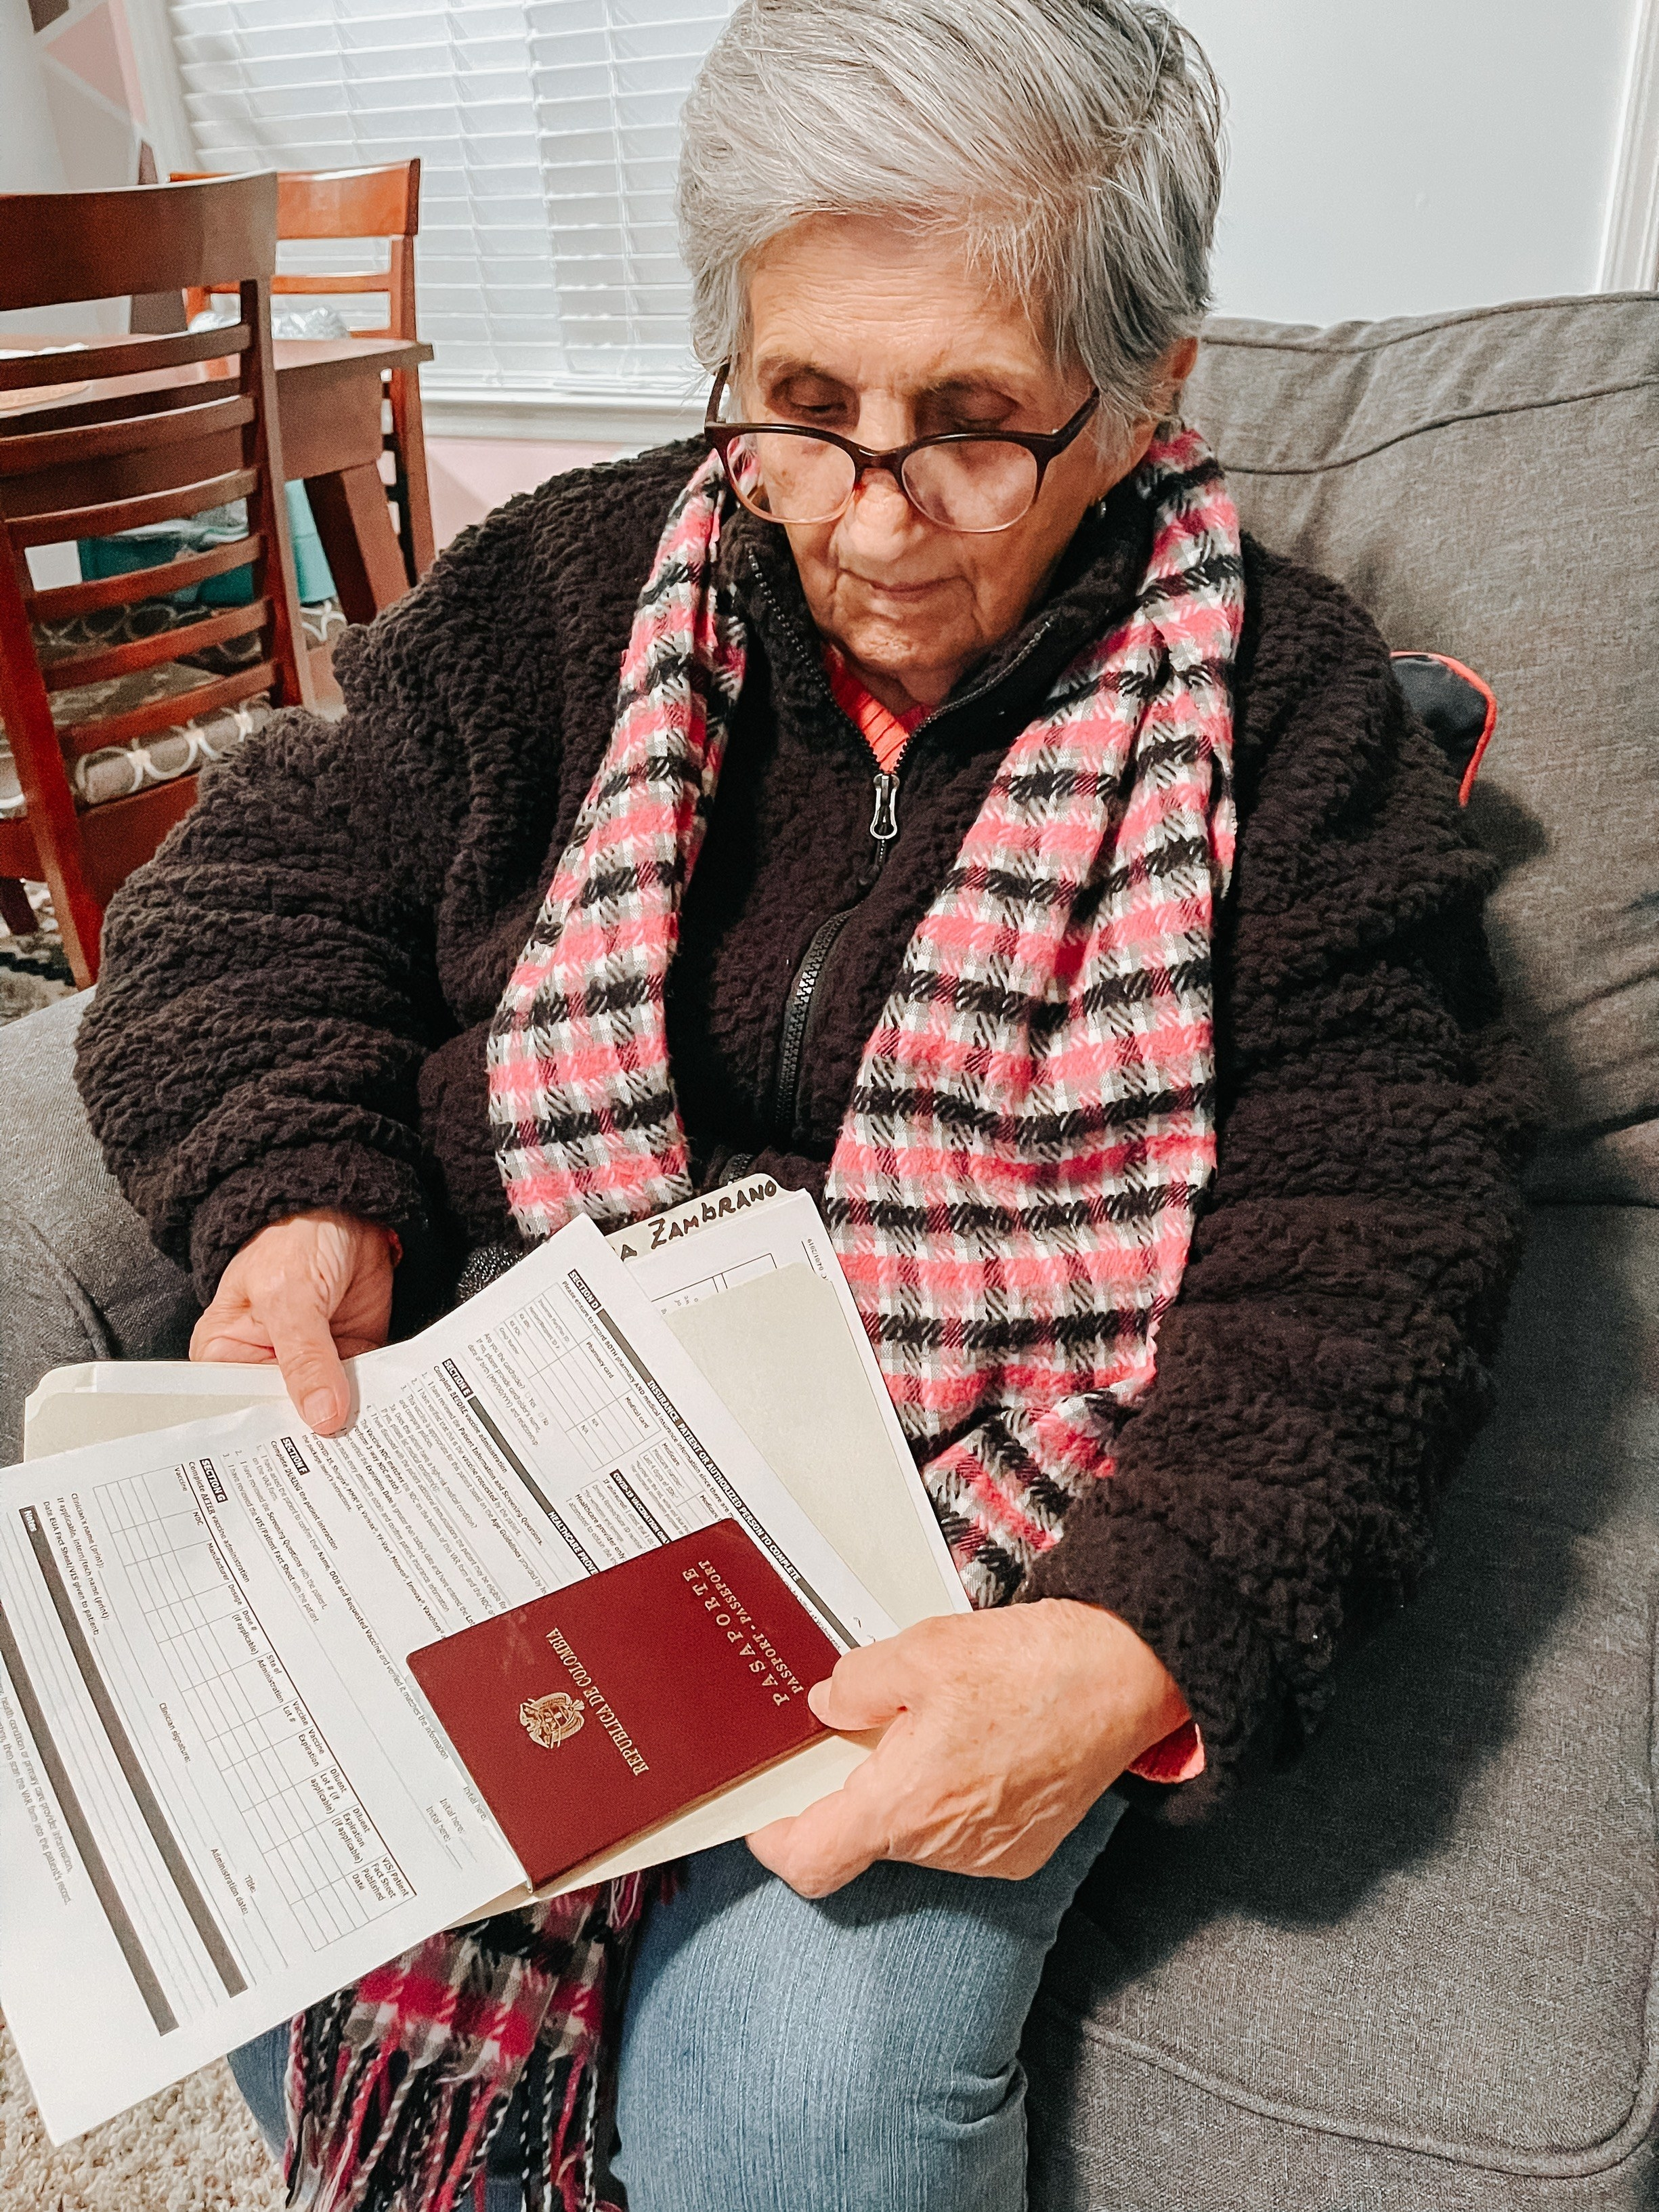 An older woman holds a passport and other documents in her hands